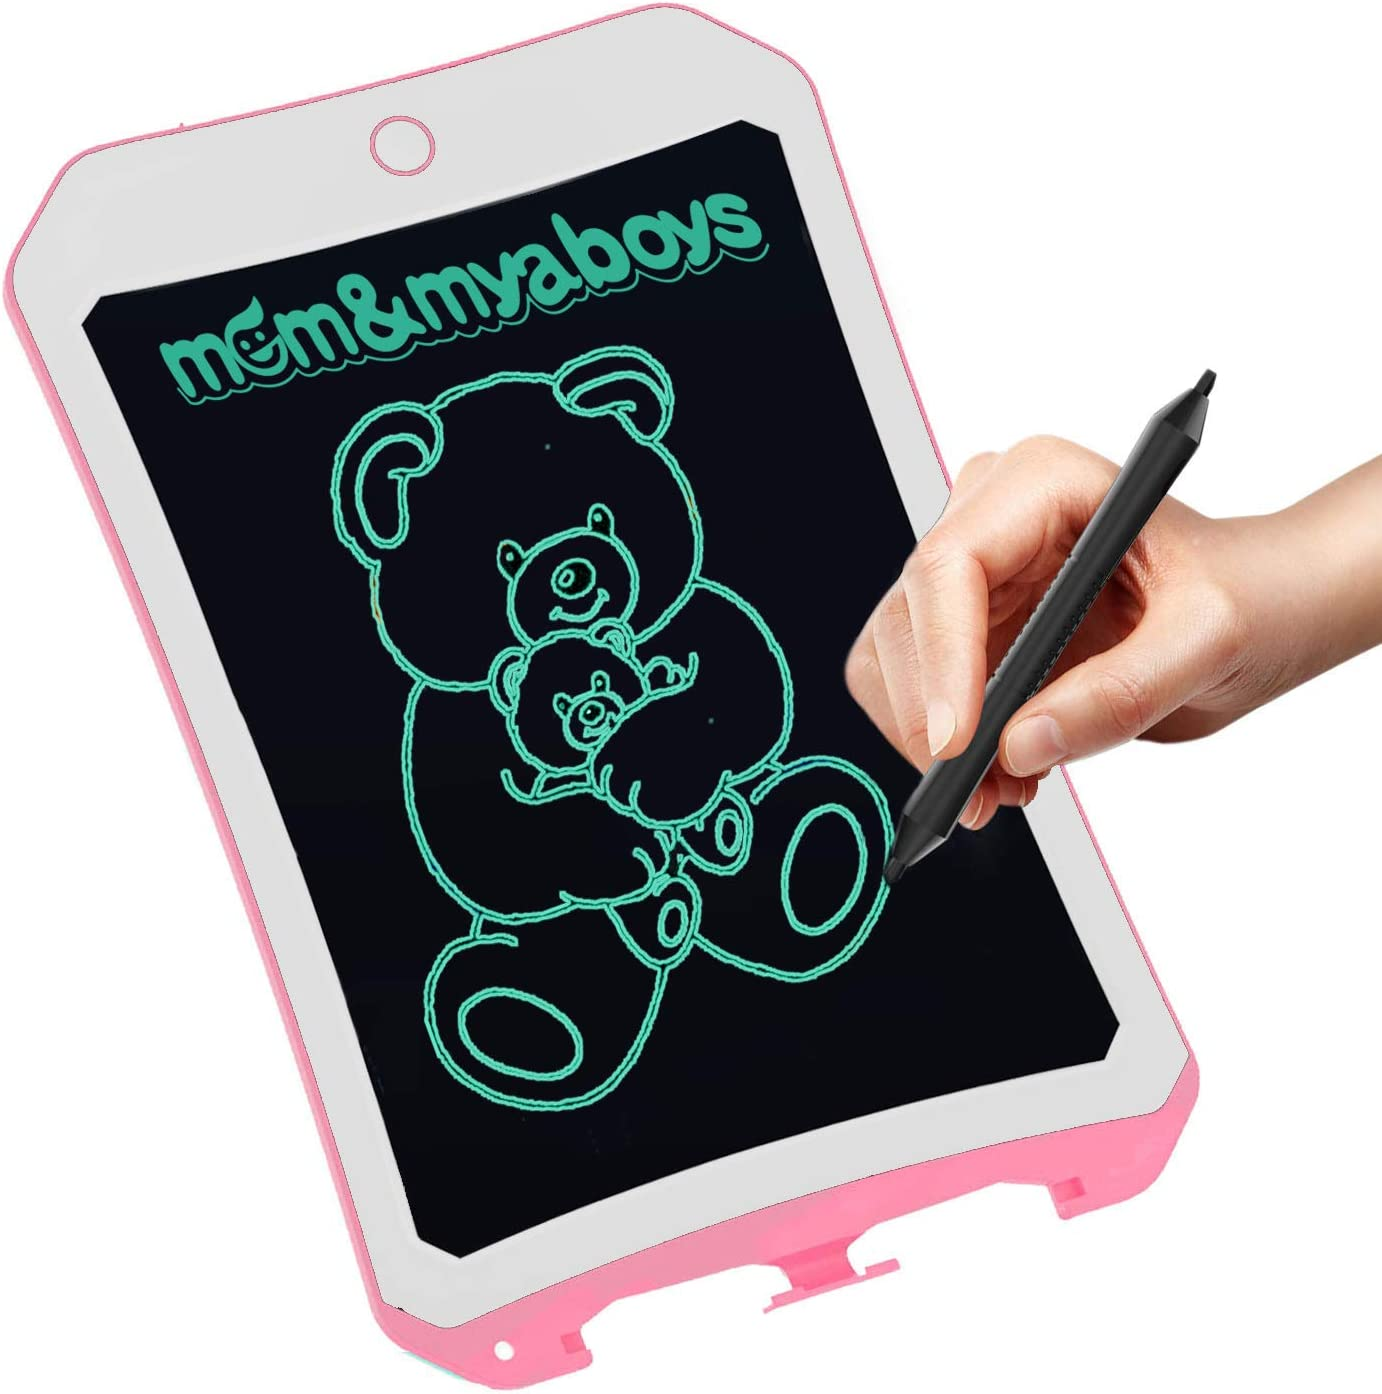 8.5 Zoll Writing &Drawing Board Doodle Board Toys für Kids, Mom&Myaboys Birthday Gift für 4-5 Years alt Kids & Adults Lcd Writing Tablet mit Stylus Smart Paper für Drawing Writer (Pink-Whie-9)